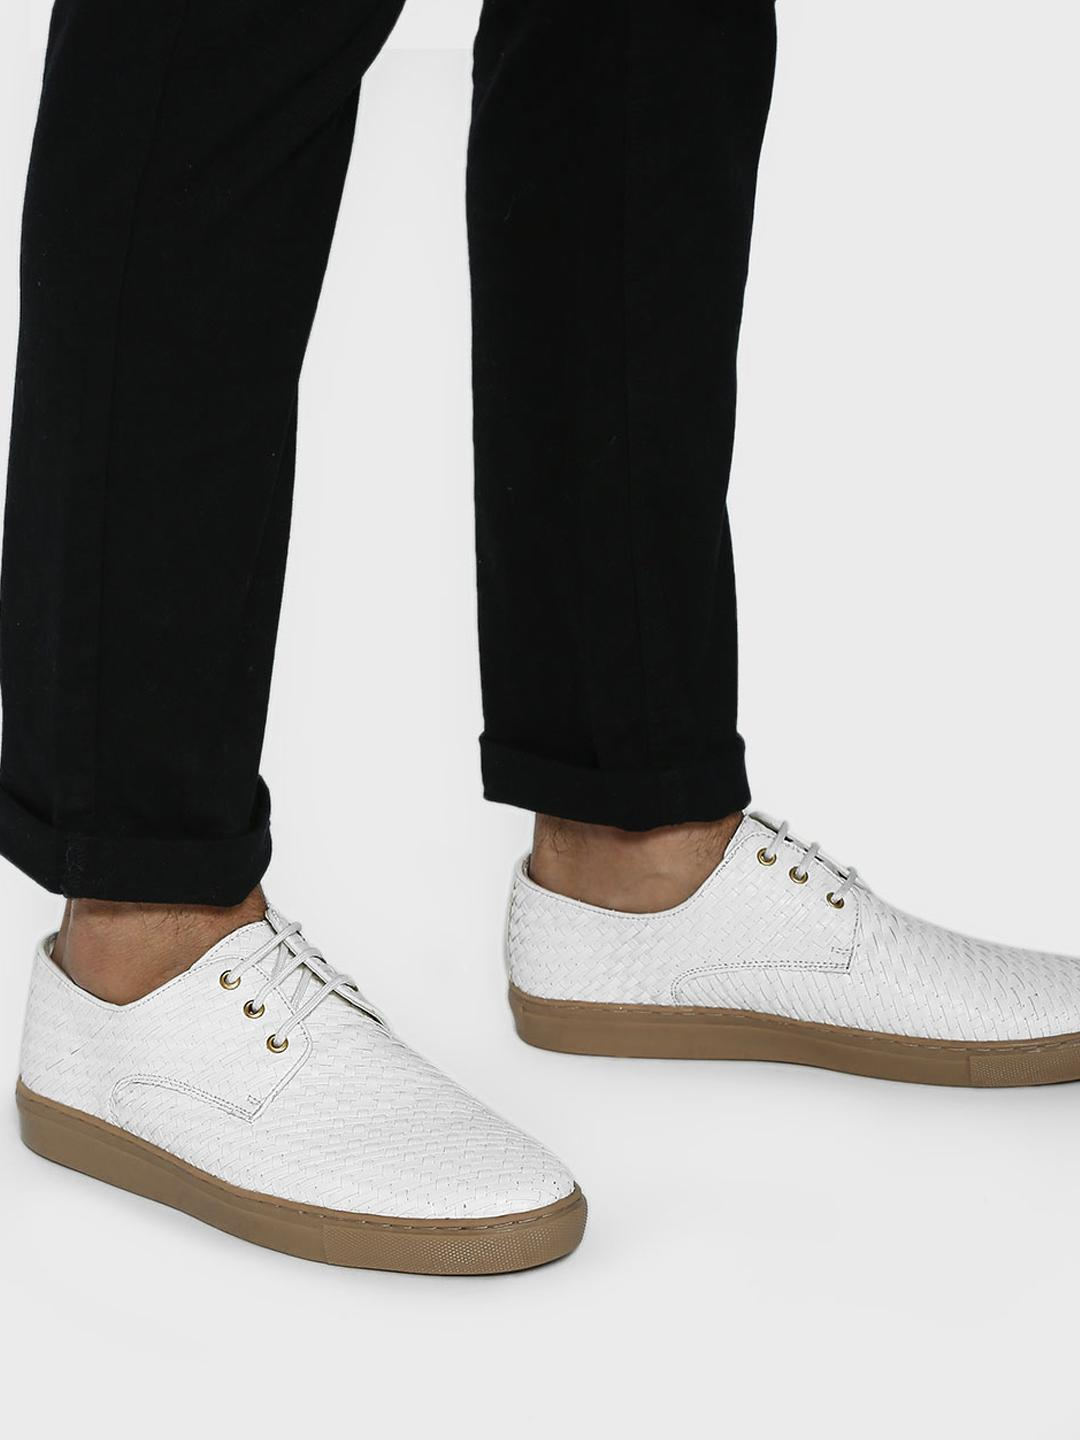 Bolt Of The Good Stuff White Handwoven Lace-Up Casual Shoes 1